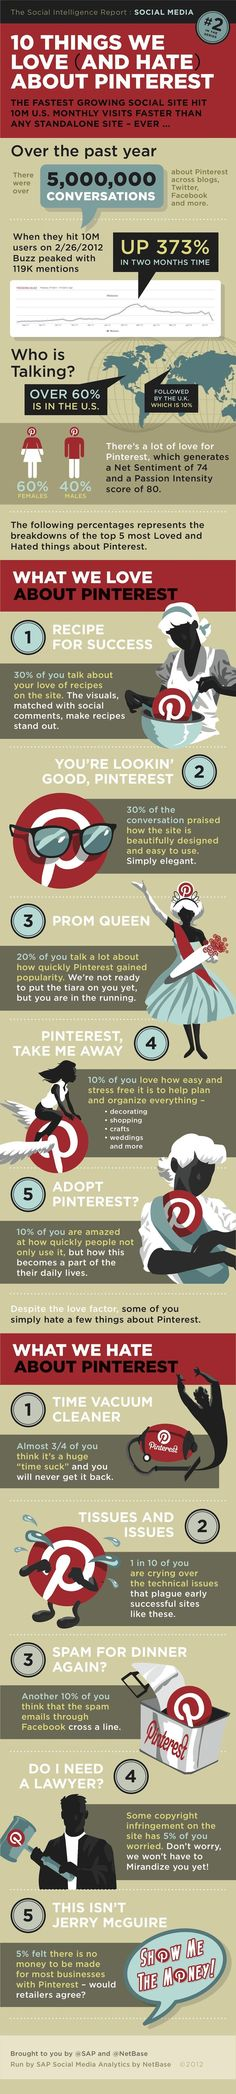 Another great inforgraphic - 10 things people love and hate about Pinterest